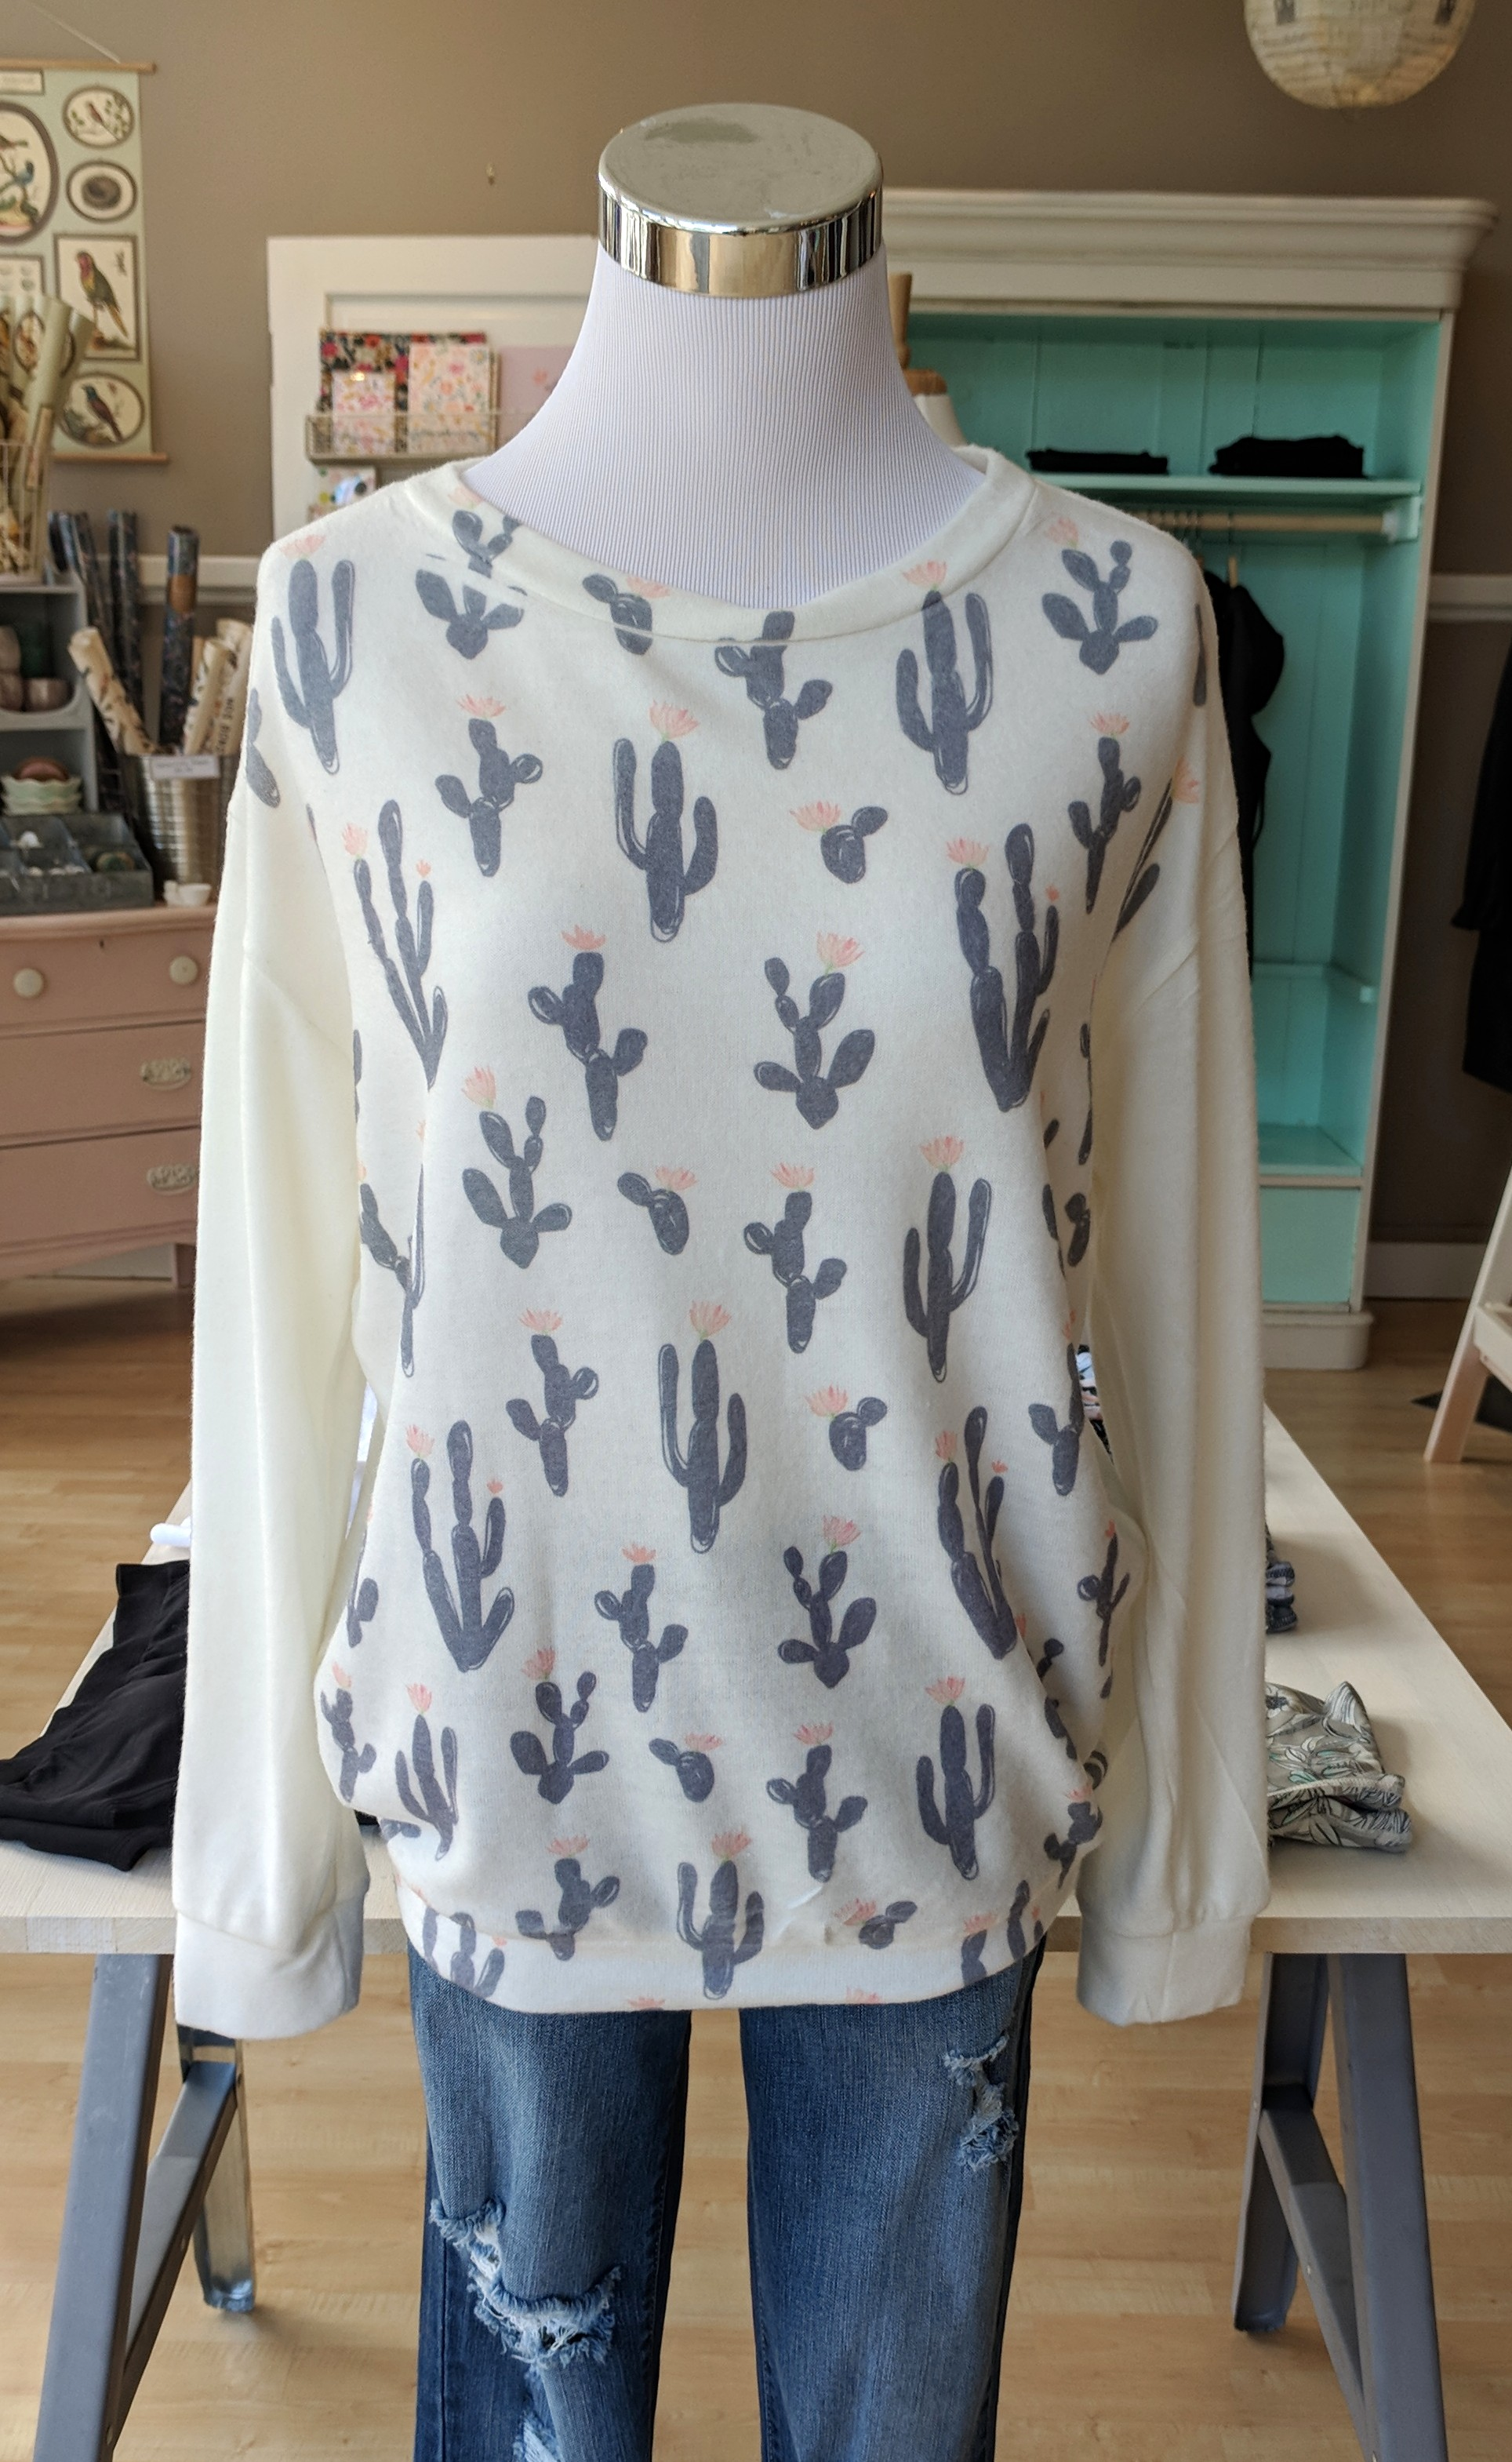 All over Ivory cactus print sweater $34